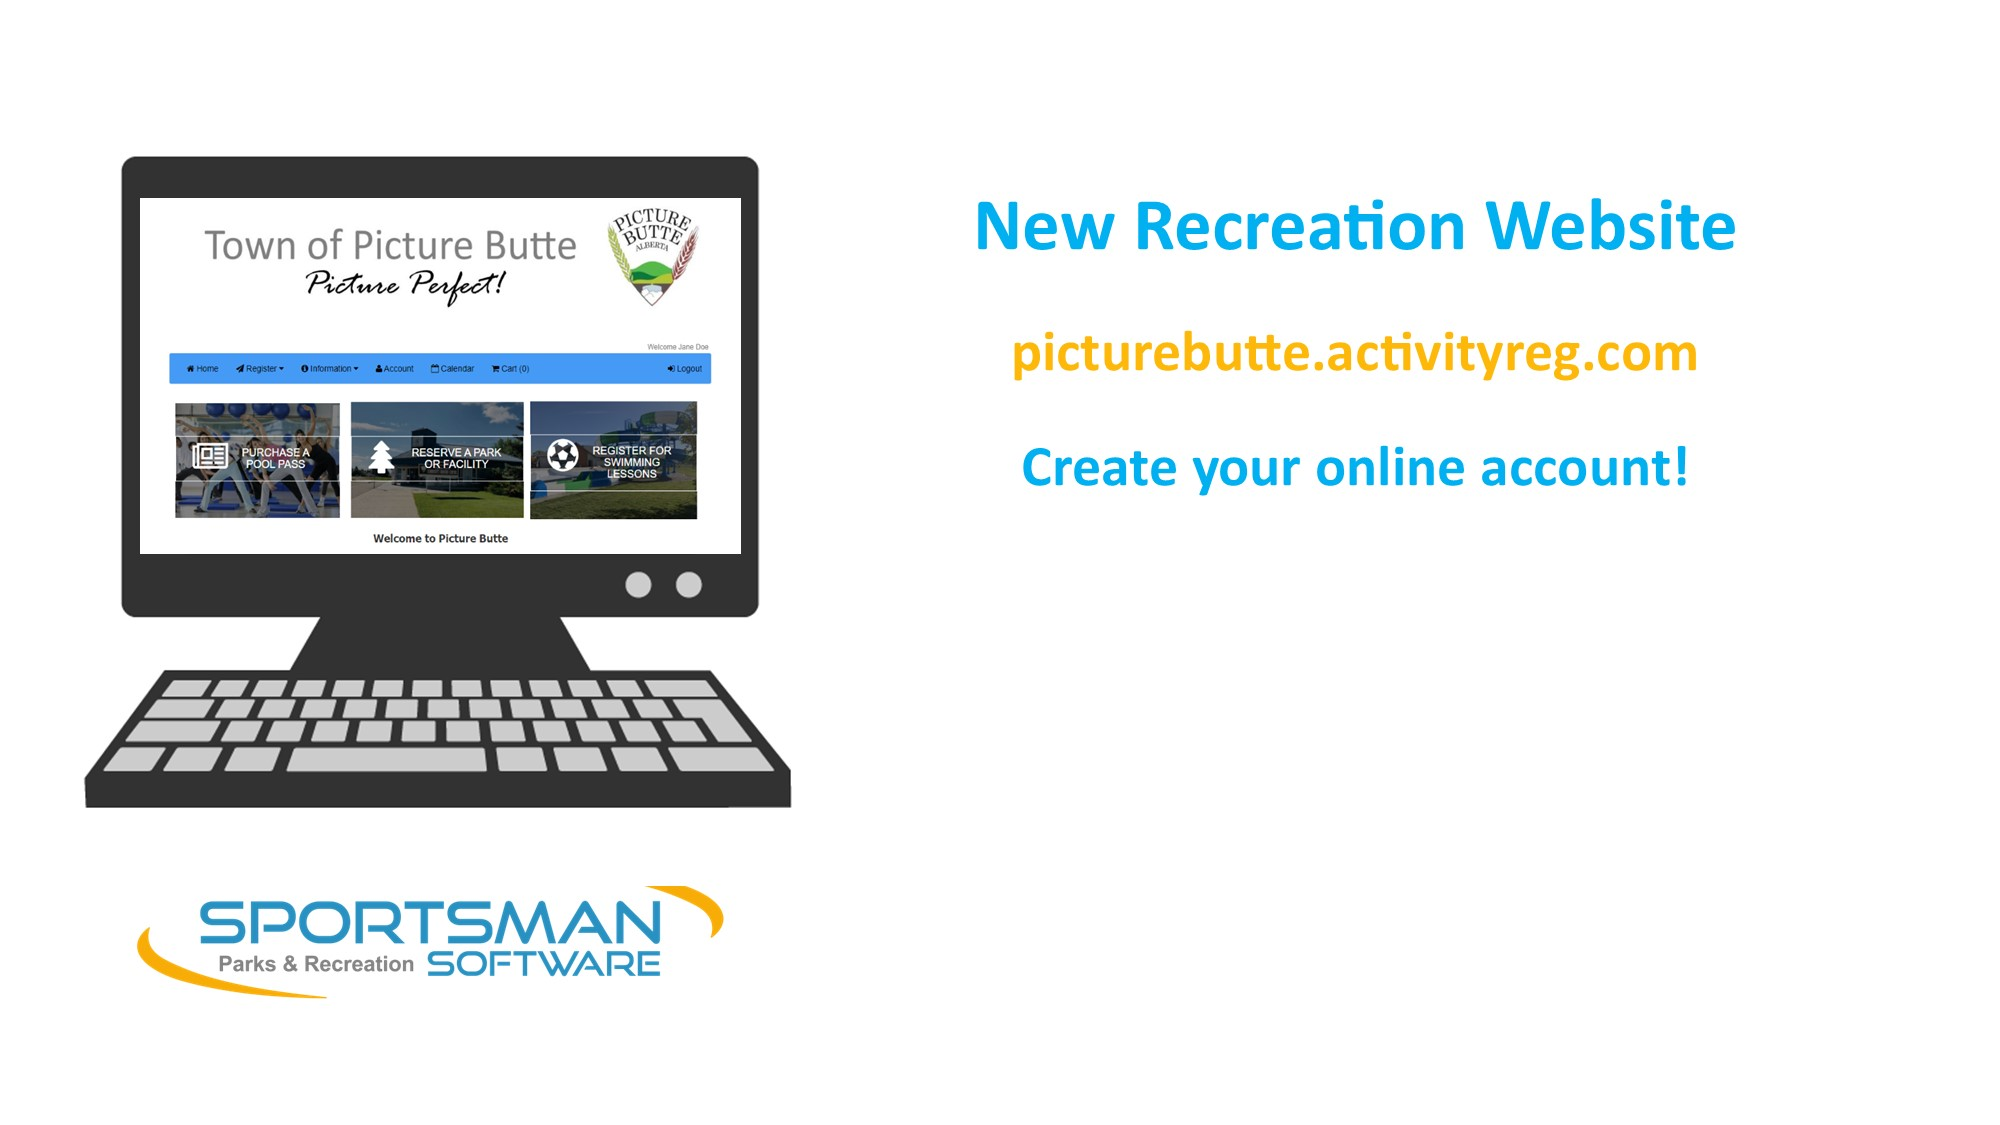 <div id=slideshow_title>New Recreation Website</div> <br>Click for instructions to setup your online account! Use your account to book facilities and purchase pool passes.